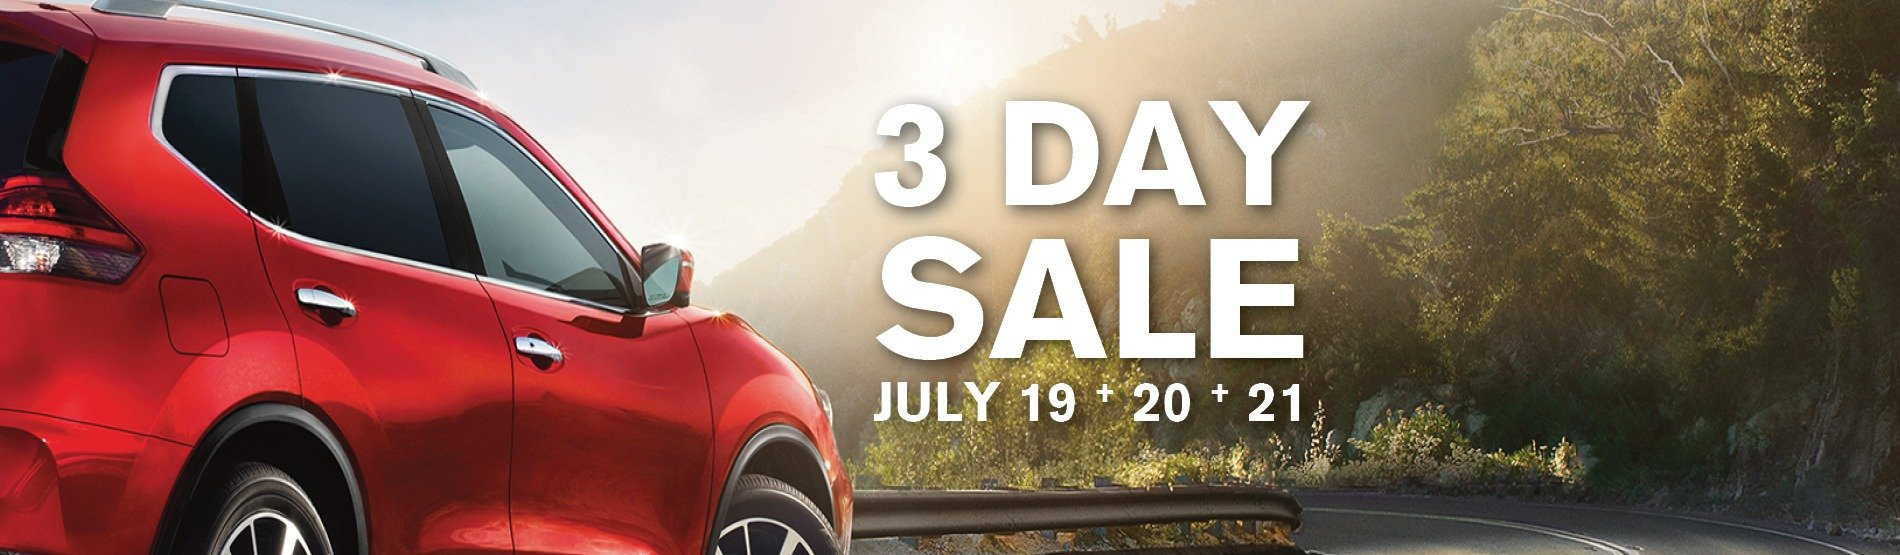 Maitland Nissan 3 day sale